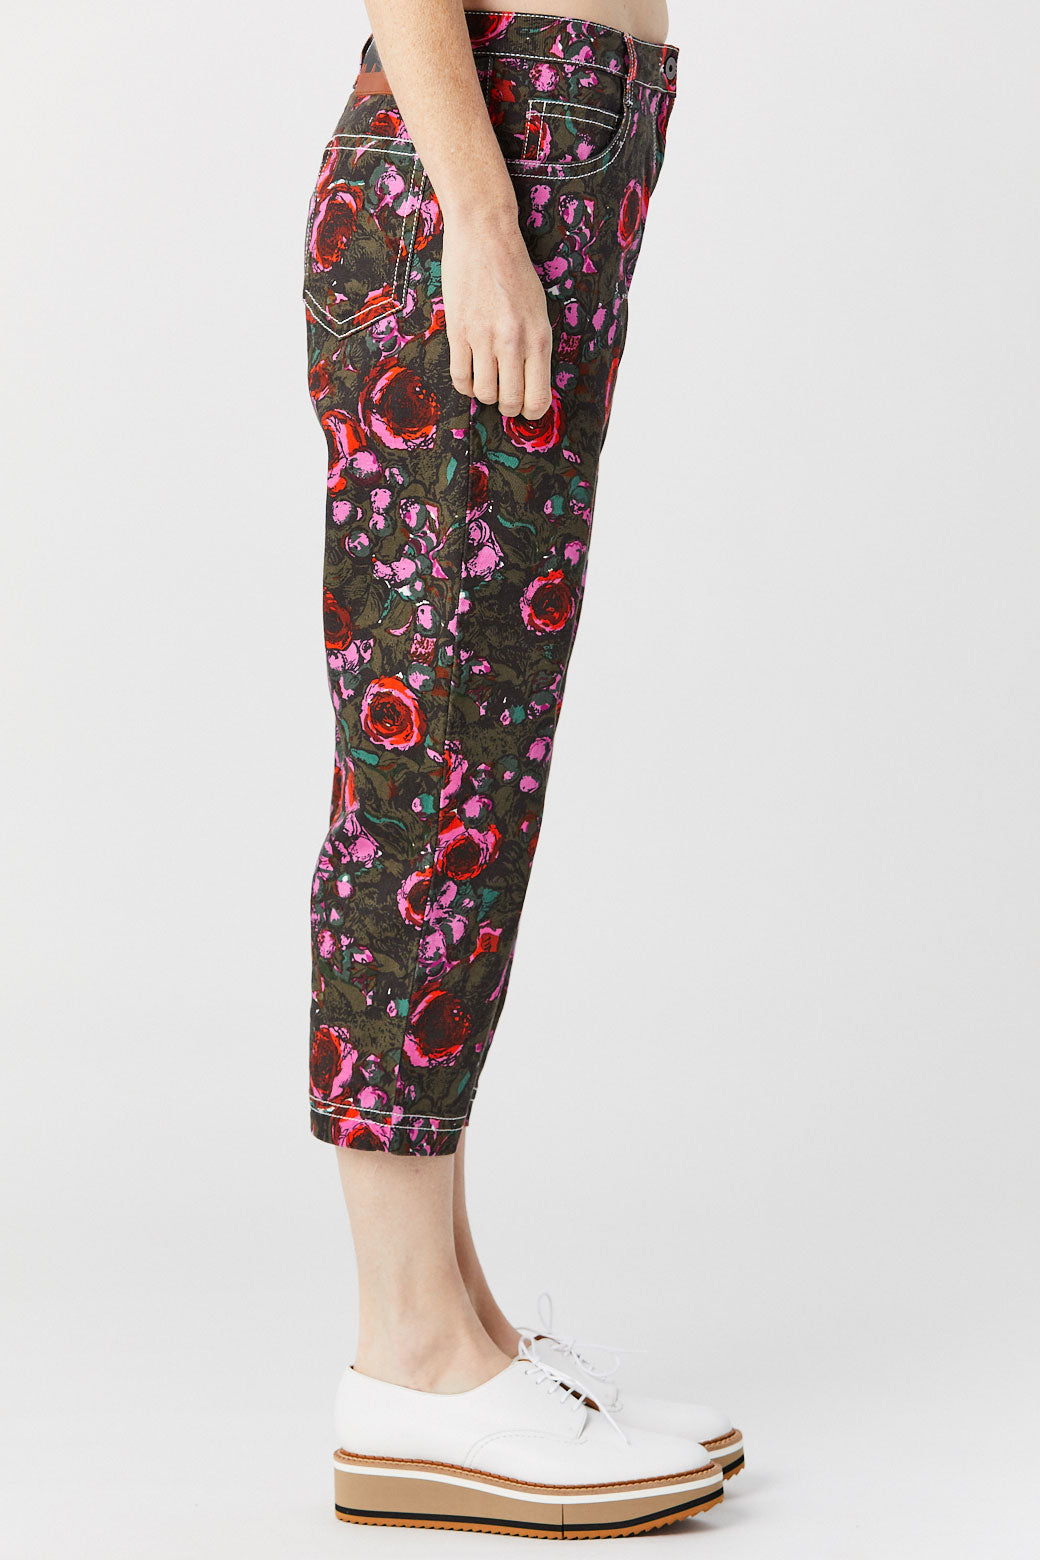 MARNI - Cropped Jeans, Flower Print